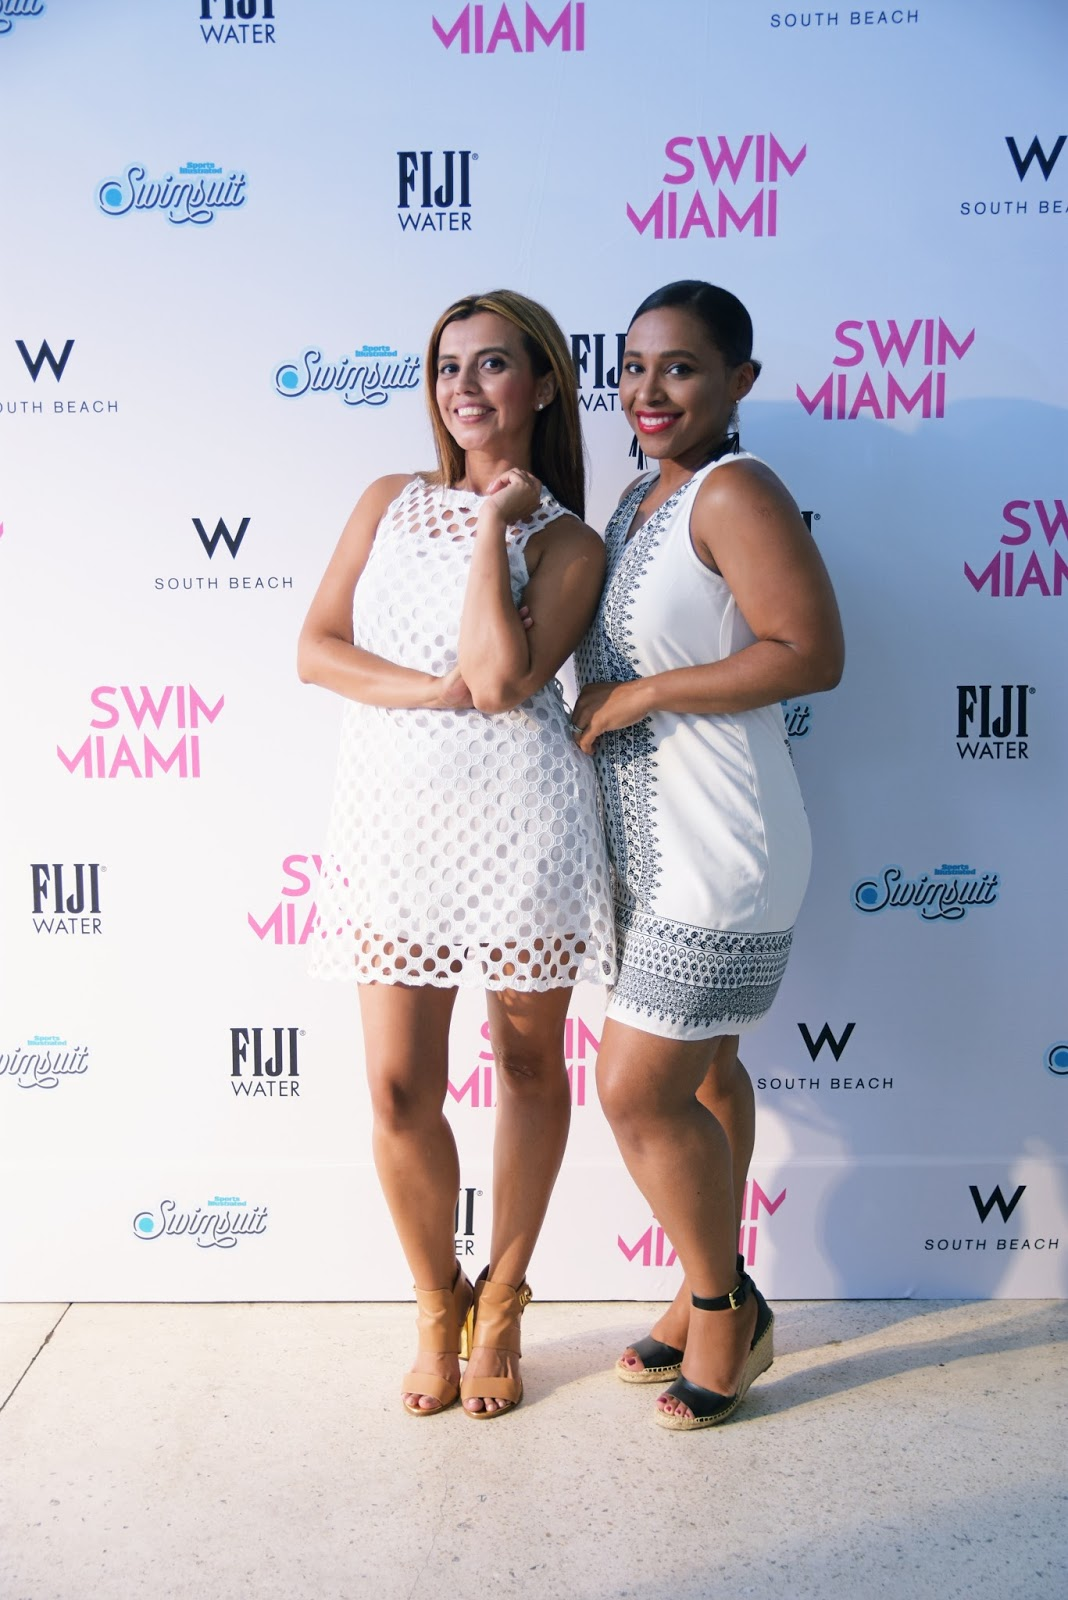 Swim Miami Opening Night With Sports Illustrated, miami swim week, blogger street style, swim shows, sports illustrated runway show